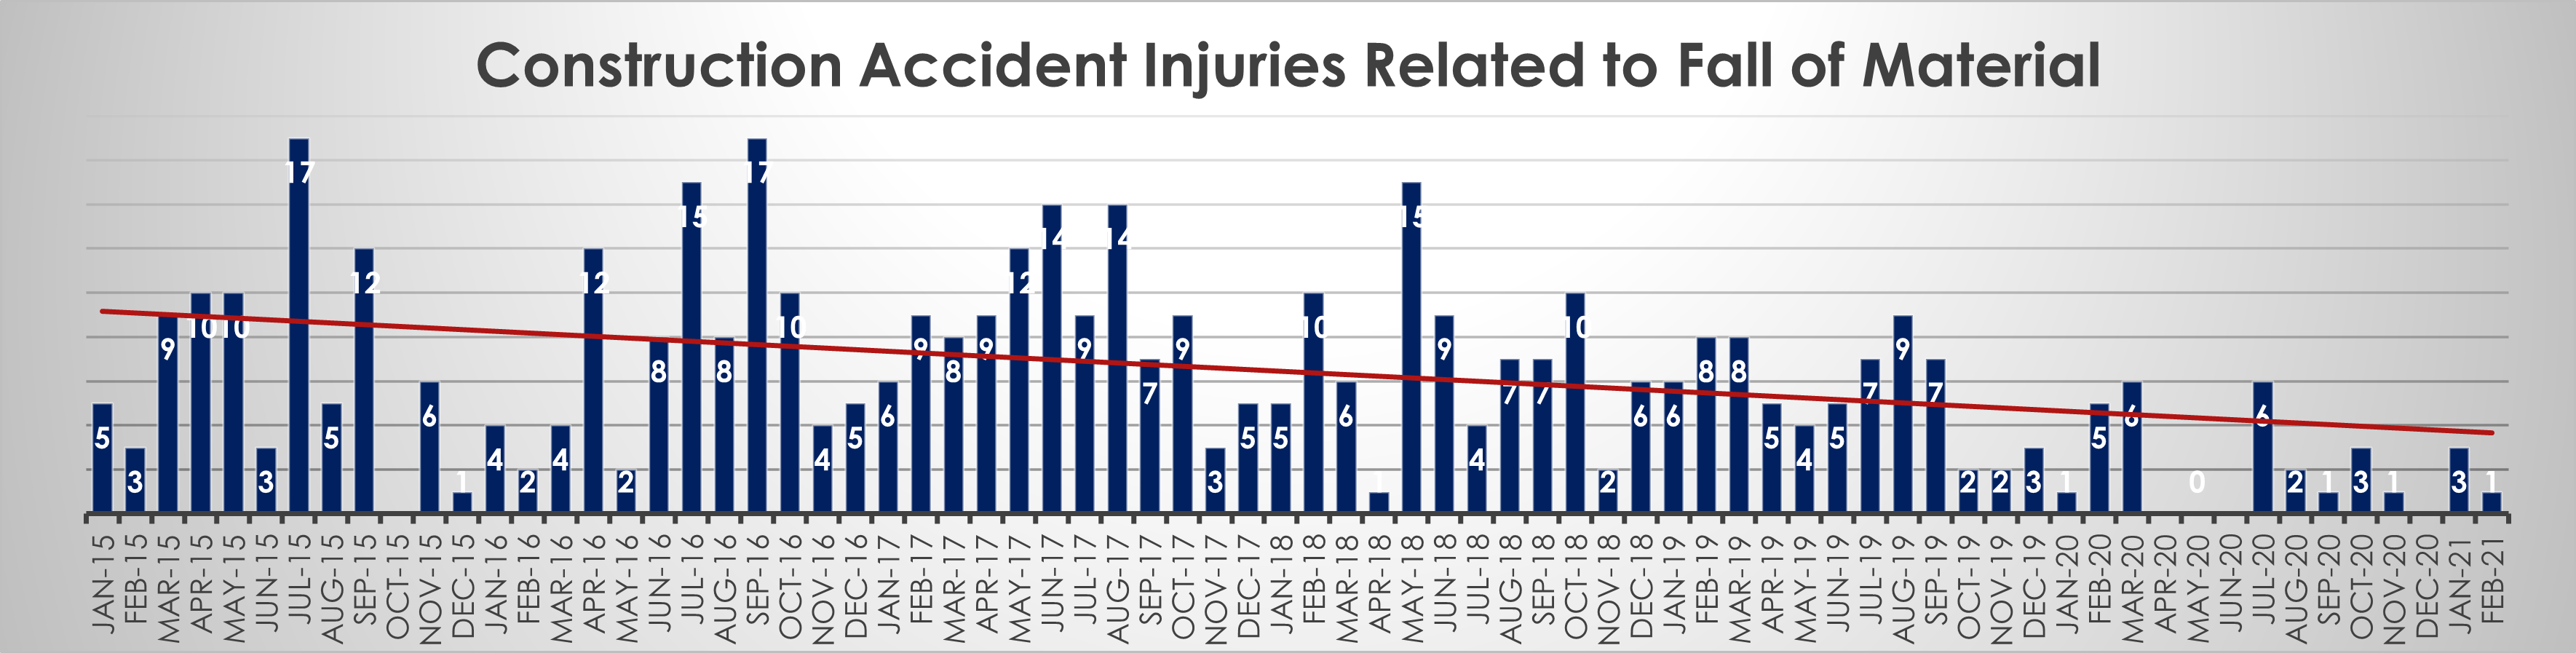 construction accident injuries caused by fall of material February 21